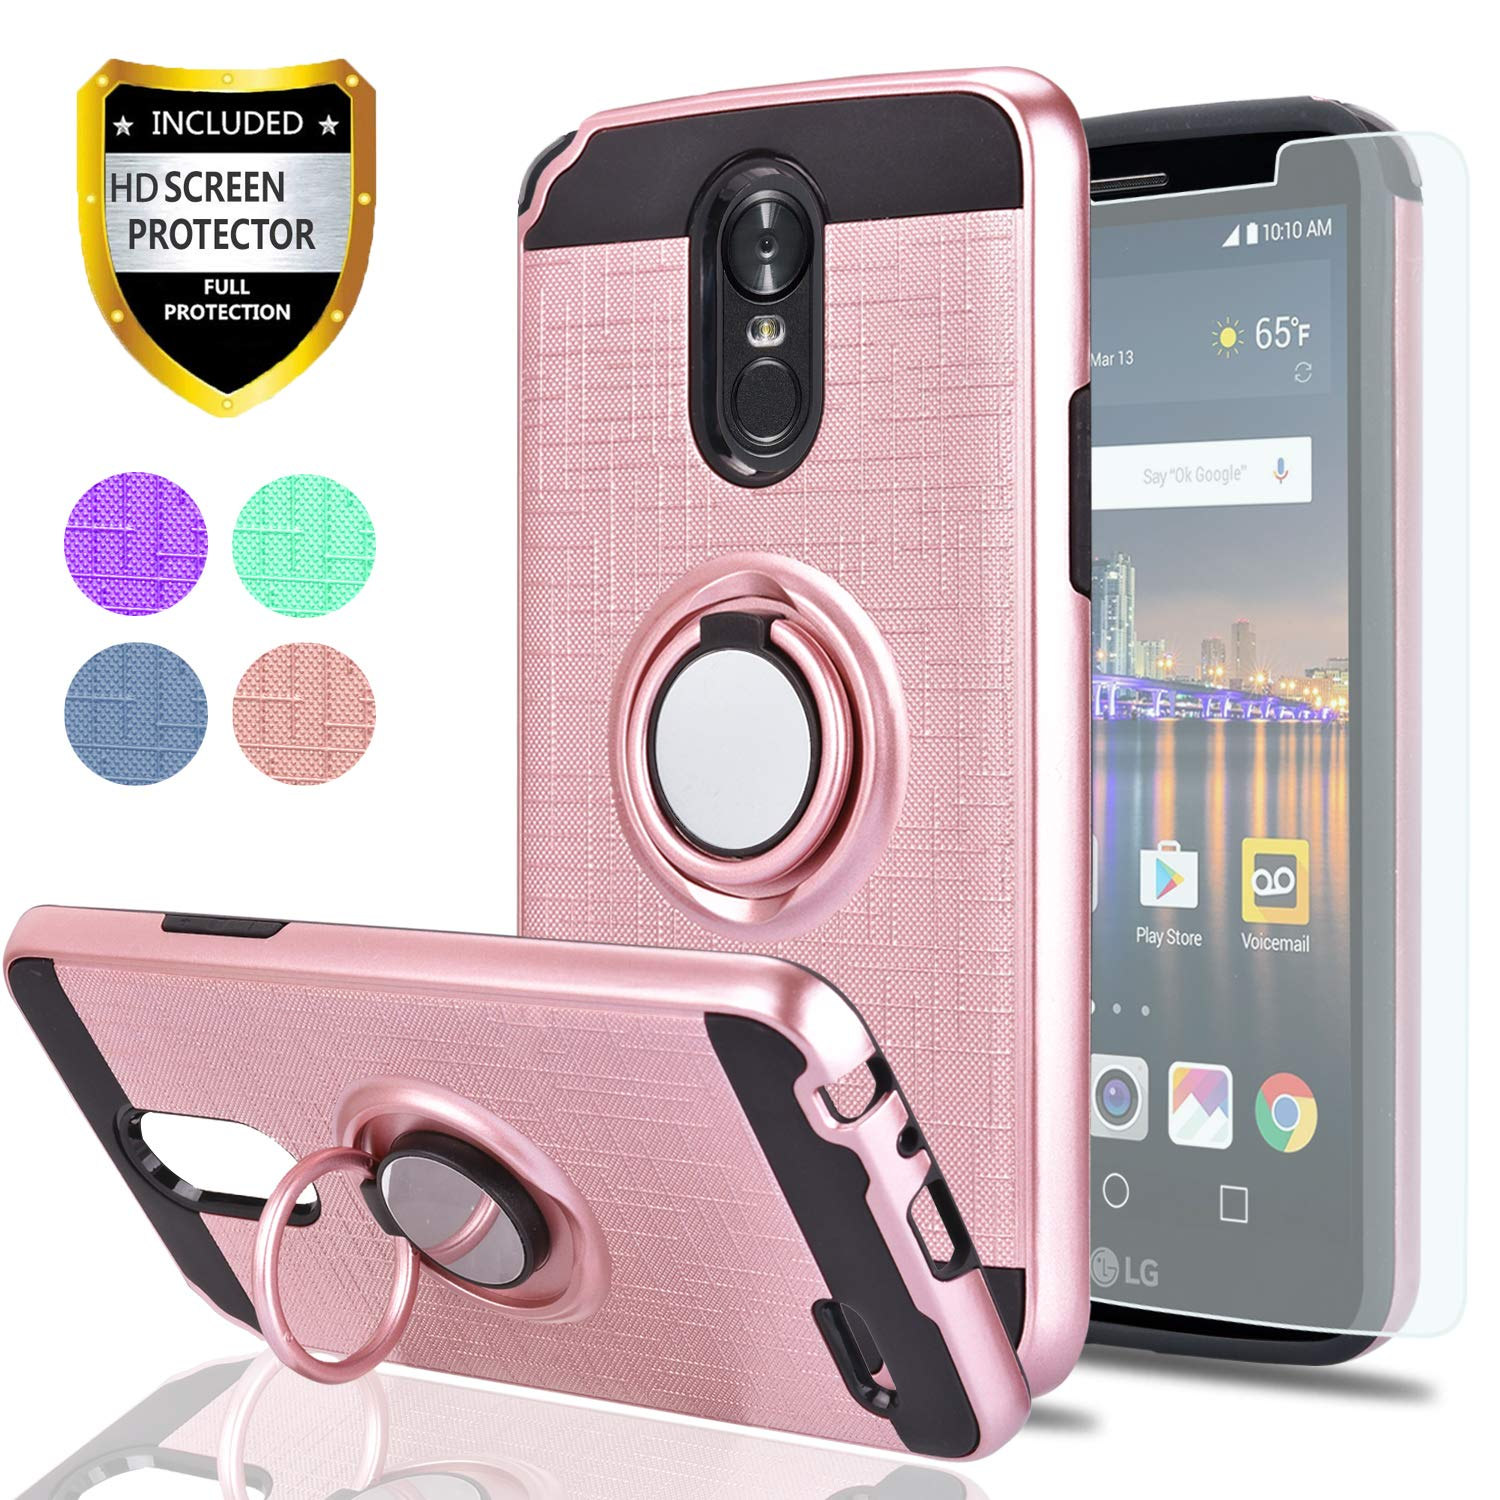 LG Stylo 3 / LG Stylus 3 / LG Stylo 3 Plus Case with HD Screen Protector,Ymhxcy 360 Degree Rotating Ring & Bracket Rubber Dual Layer Shock Bumper Resistant Back Cover for LS777-ZH Rose Gold